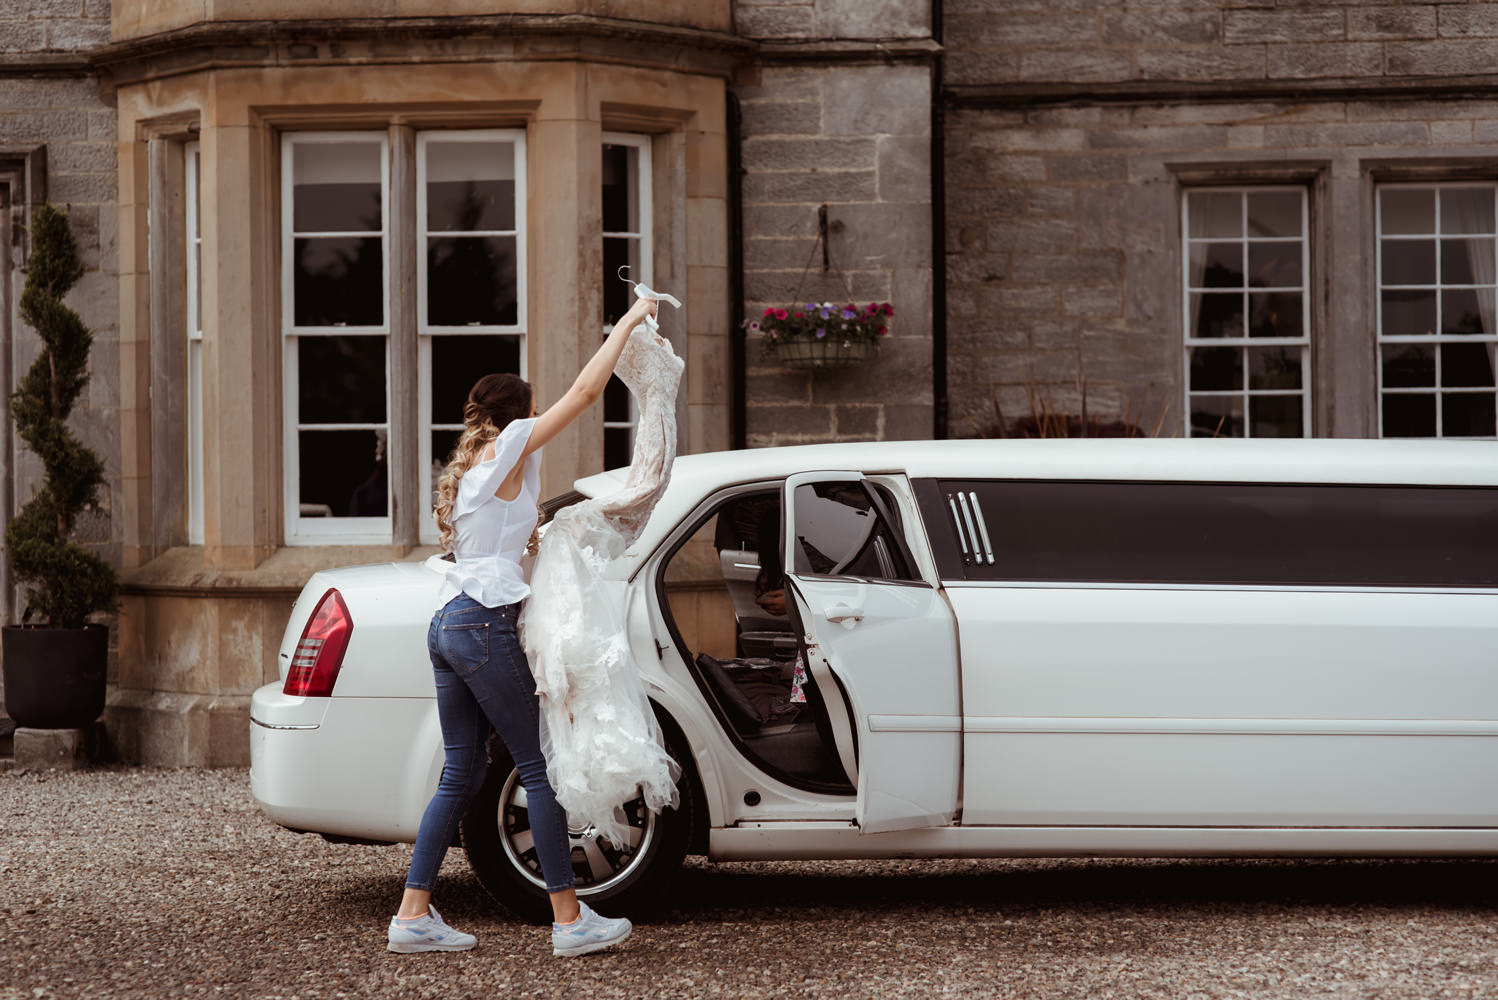 wedding-limousine-scotland.jpg